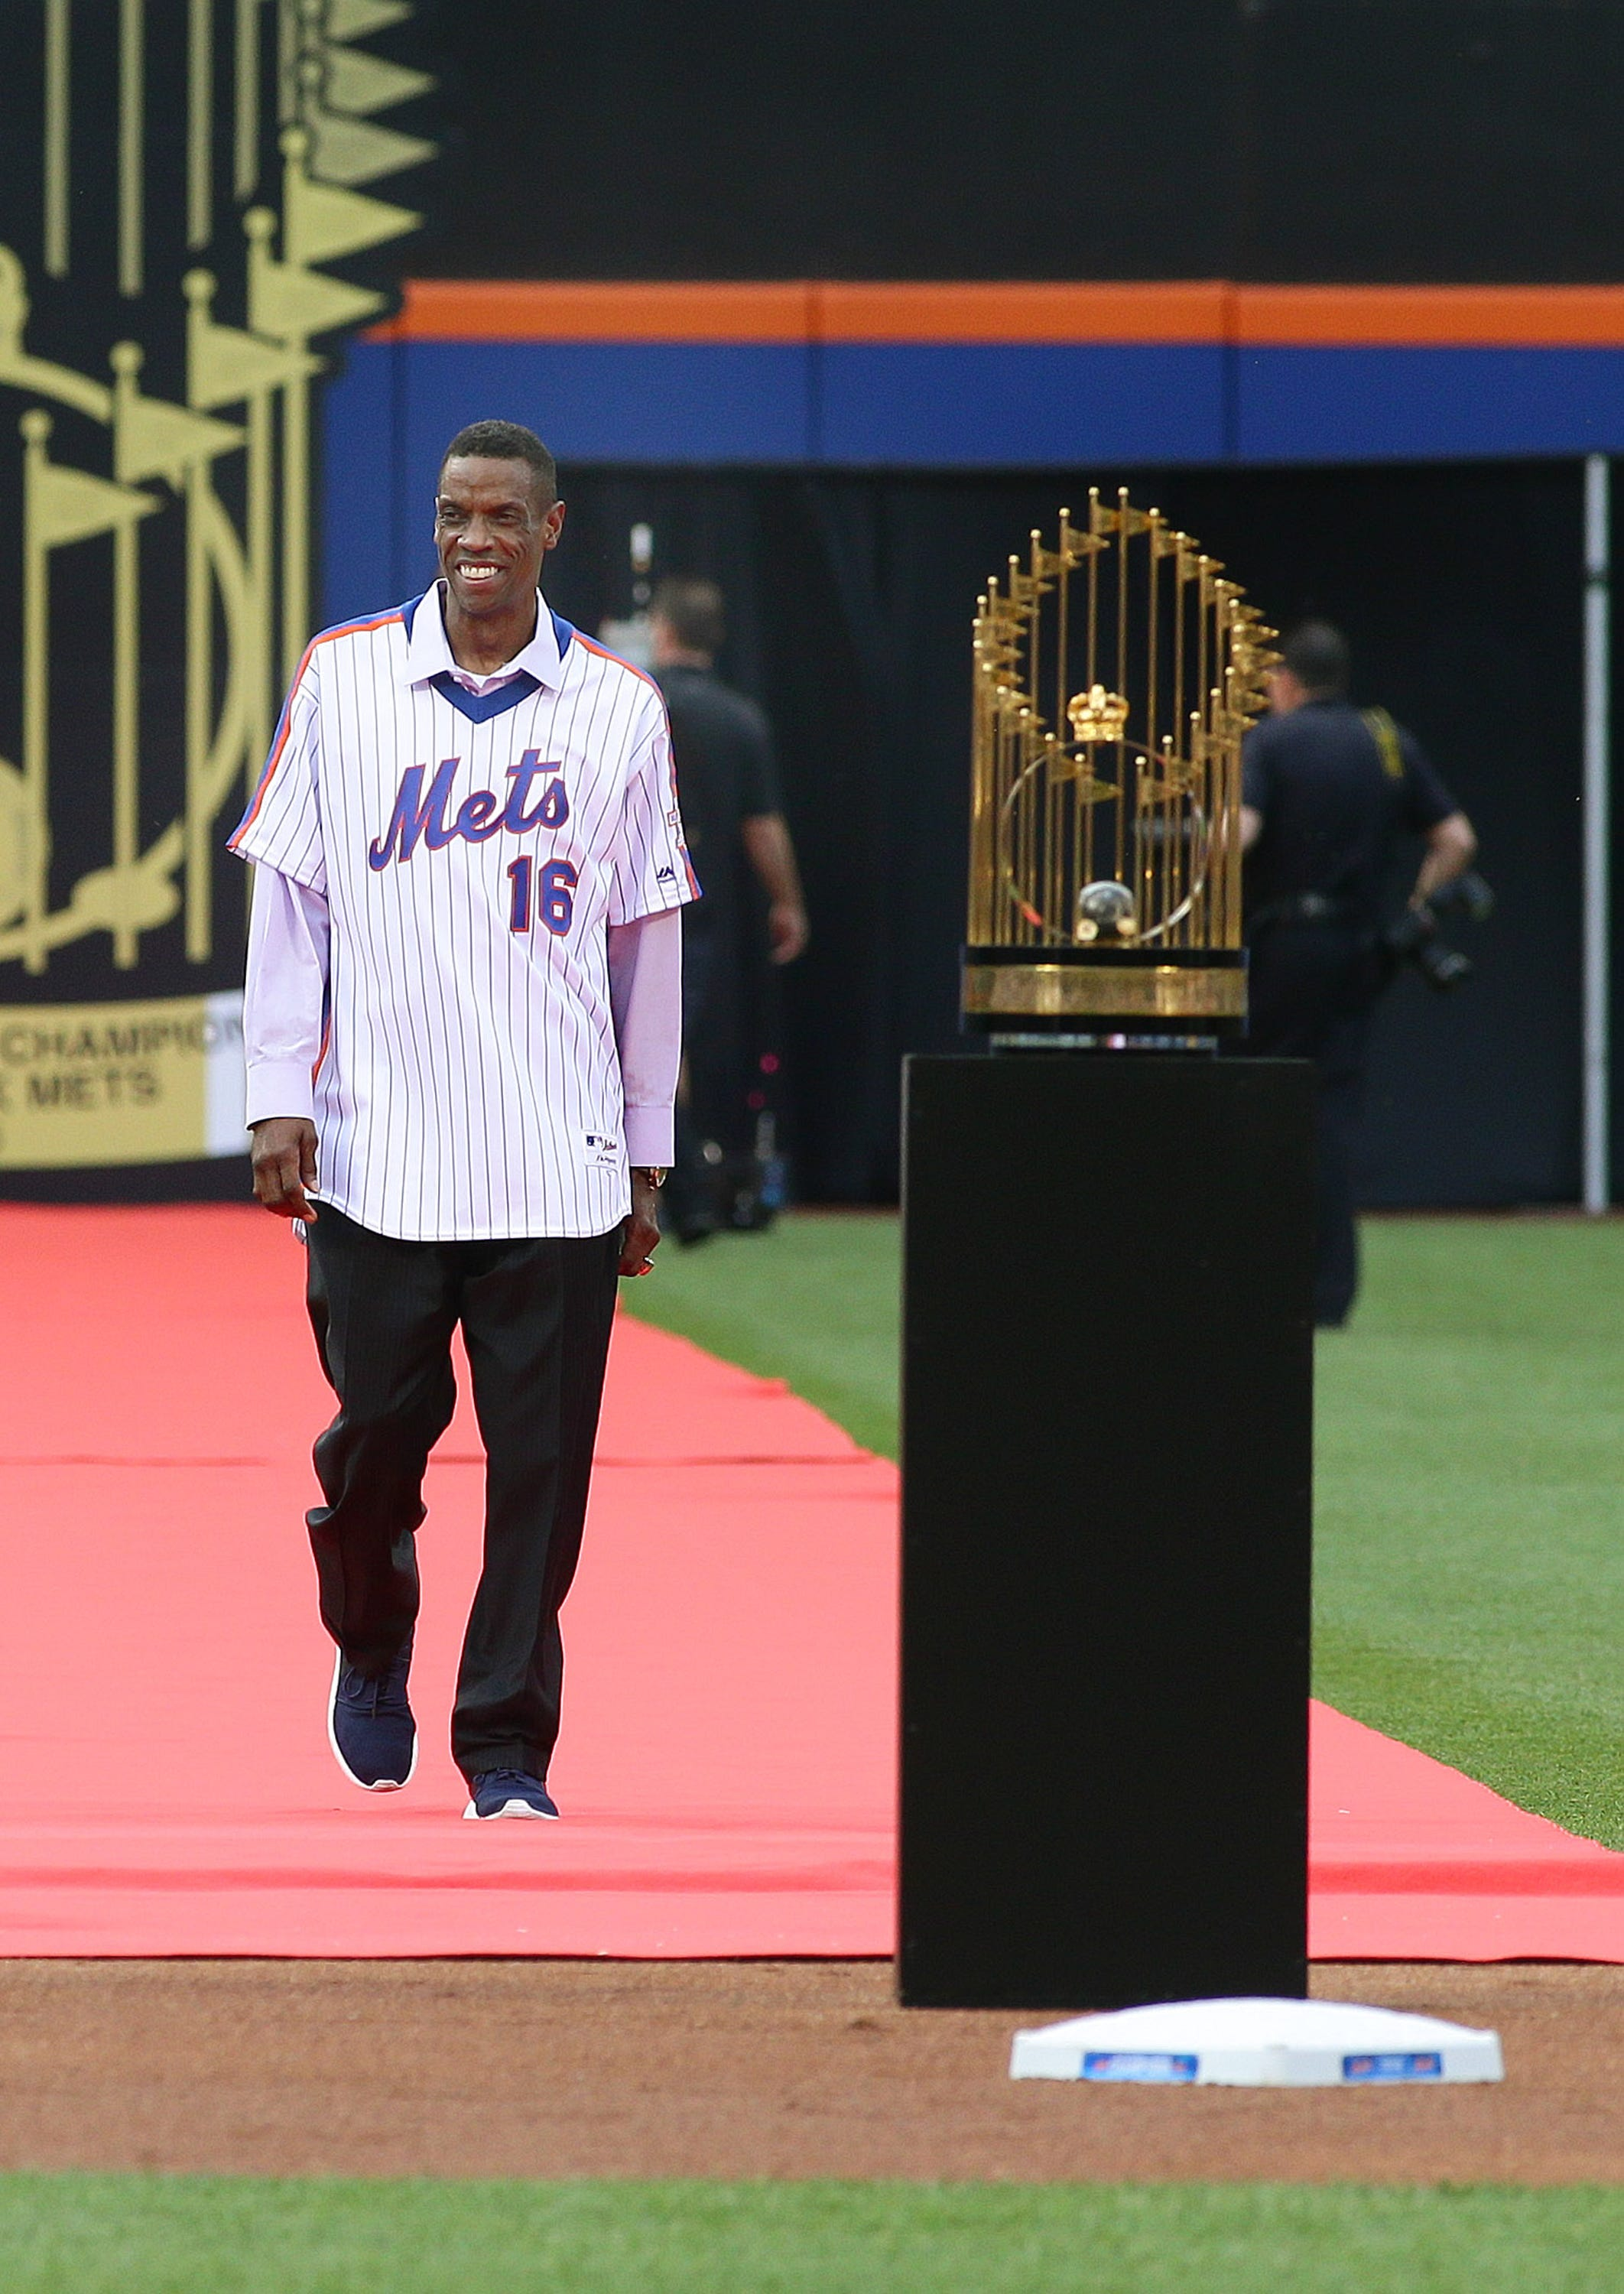 Ex-Mets pitcher Dwight Gooden arrested for cocaine possession last month in New Jersey